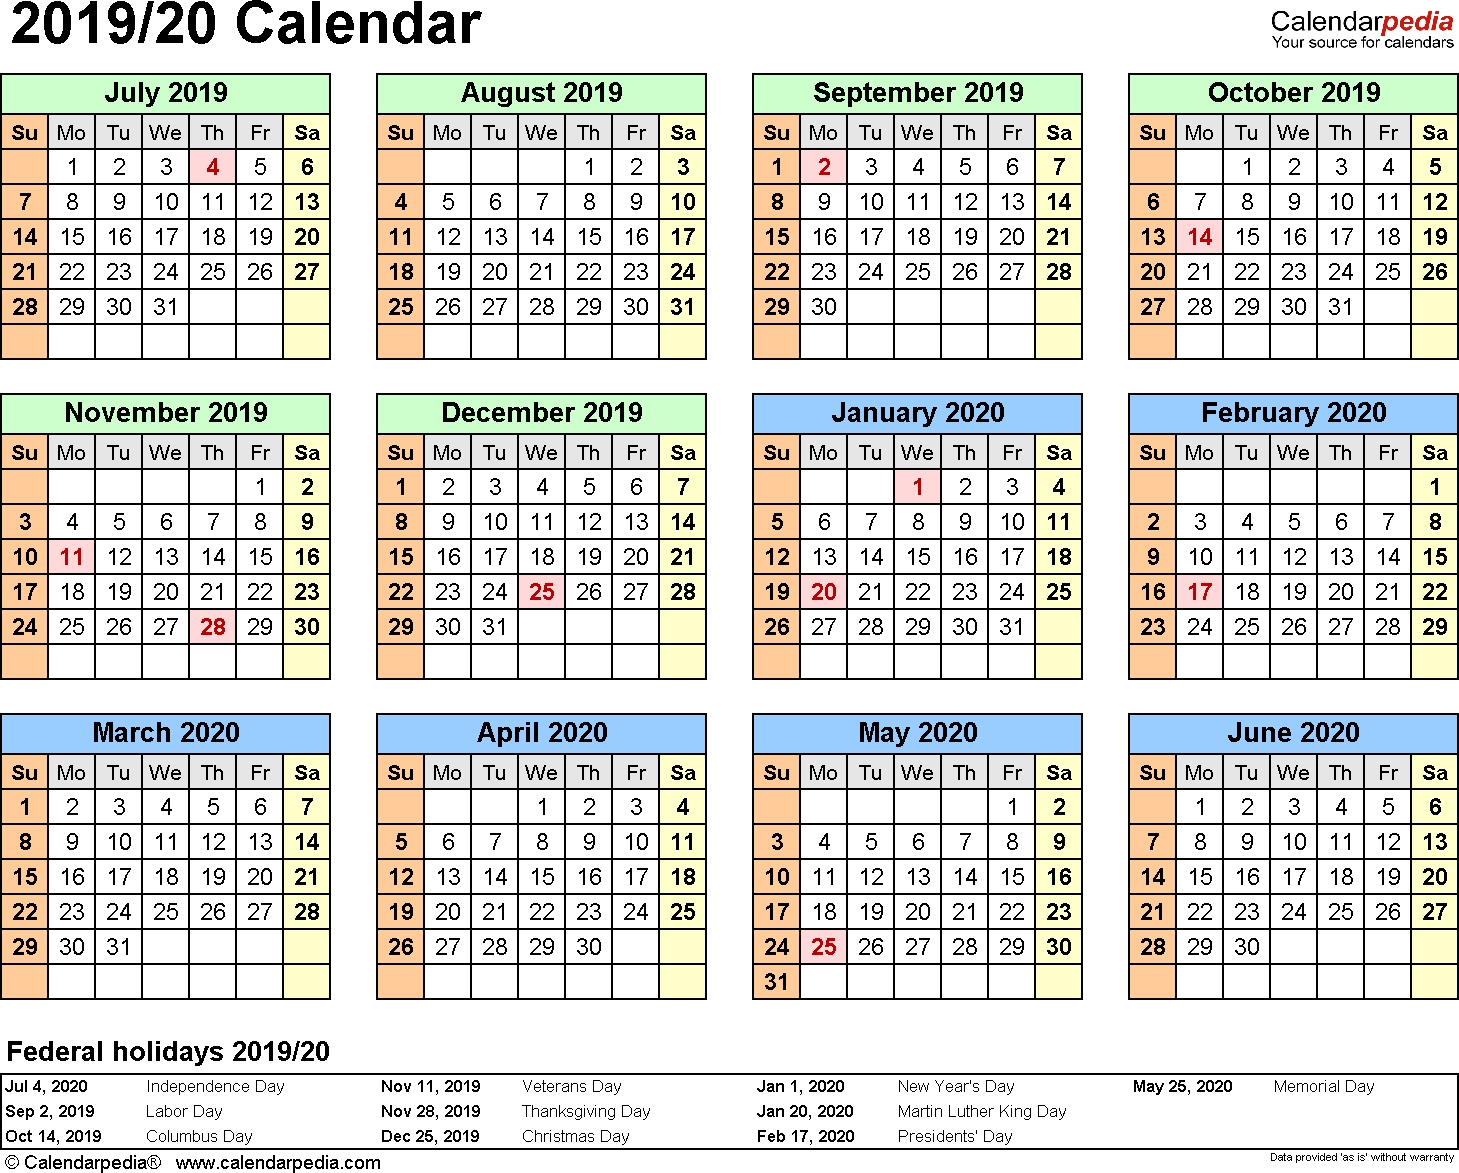 Split Year Calendar 2019/20 (July To June) - Pdf Templates throughout Free Printable Calendar July 2019-June 2020